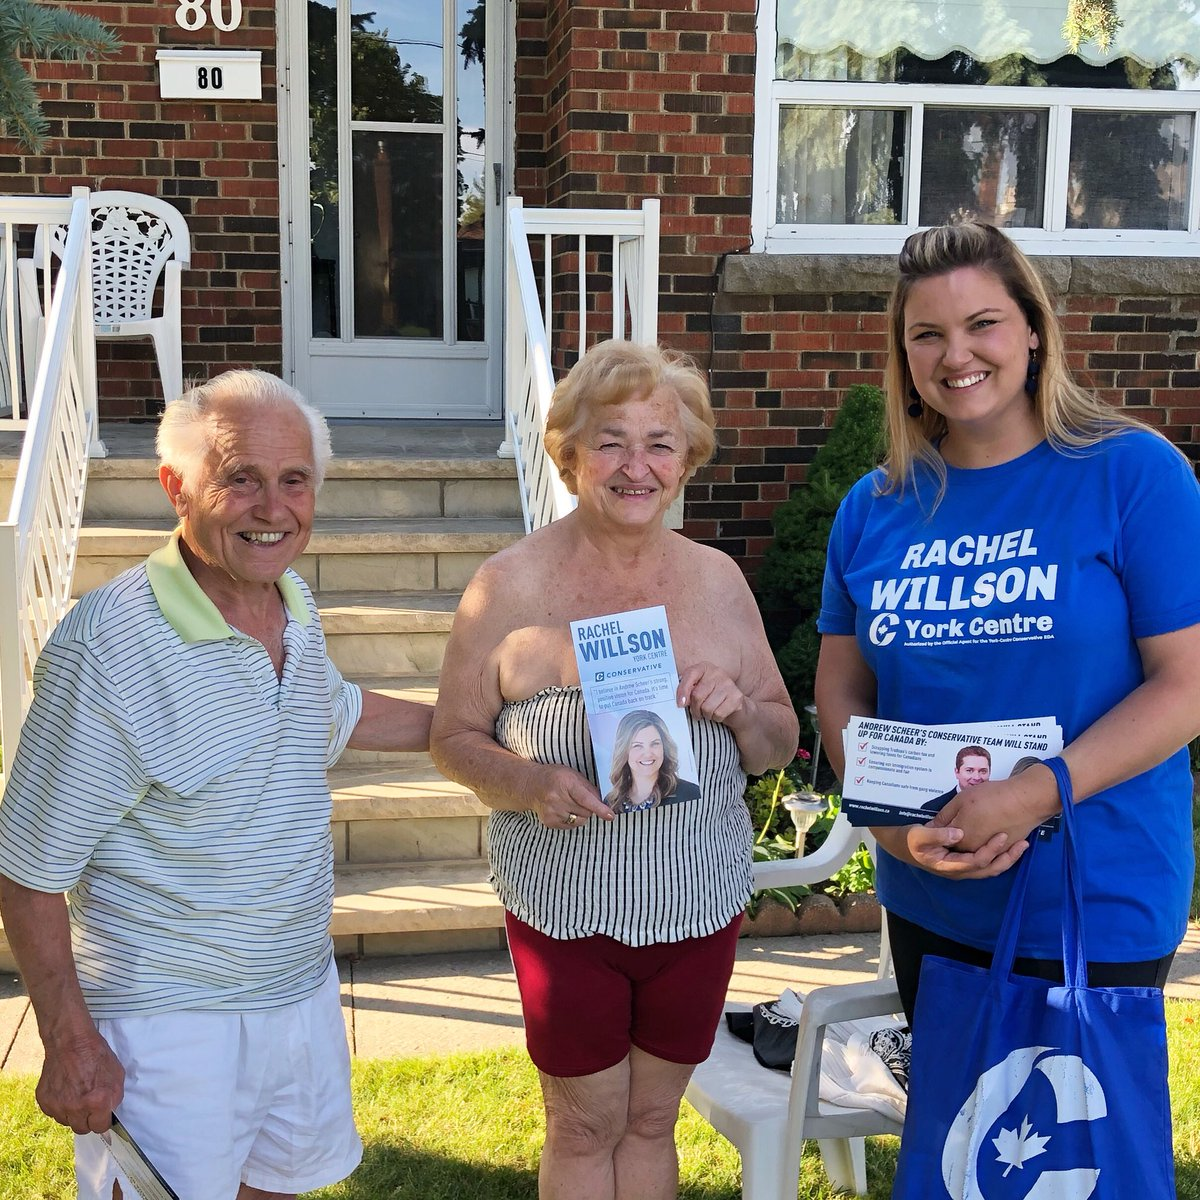 This couple has voted Liberal their entire lives... until now! They are saying #nototrudeau and voting #Conservative! Welcome to the family. Let's turn York Centre blue! @CPC_HQ #cdnpoli